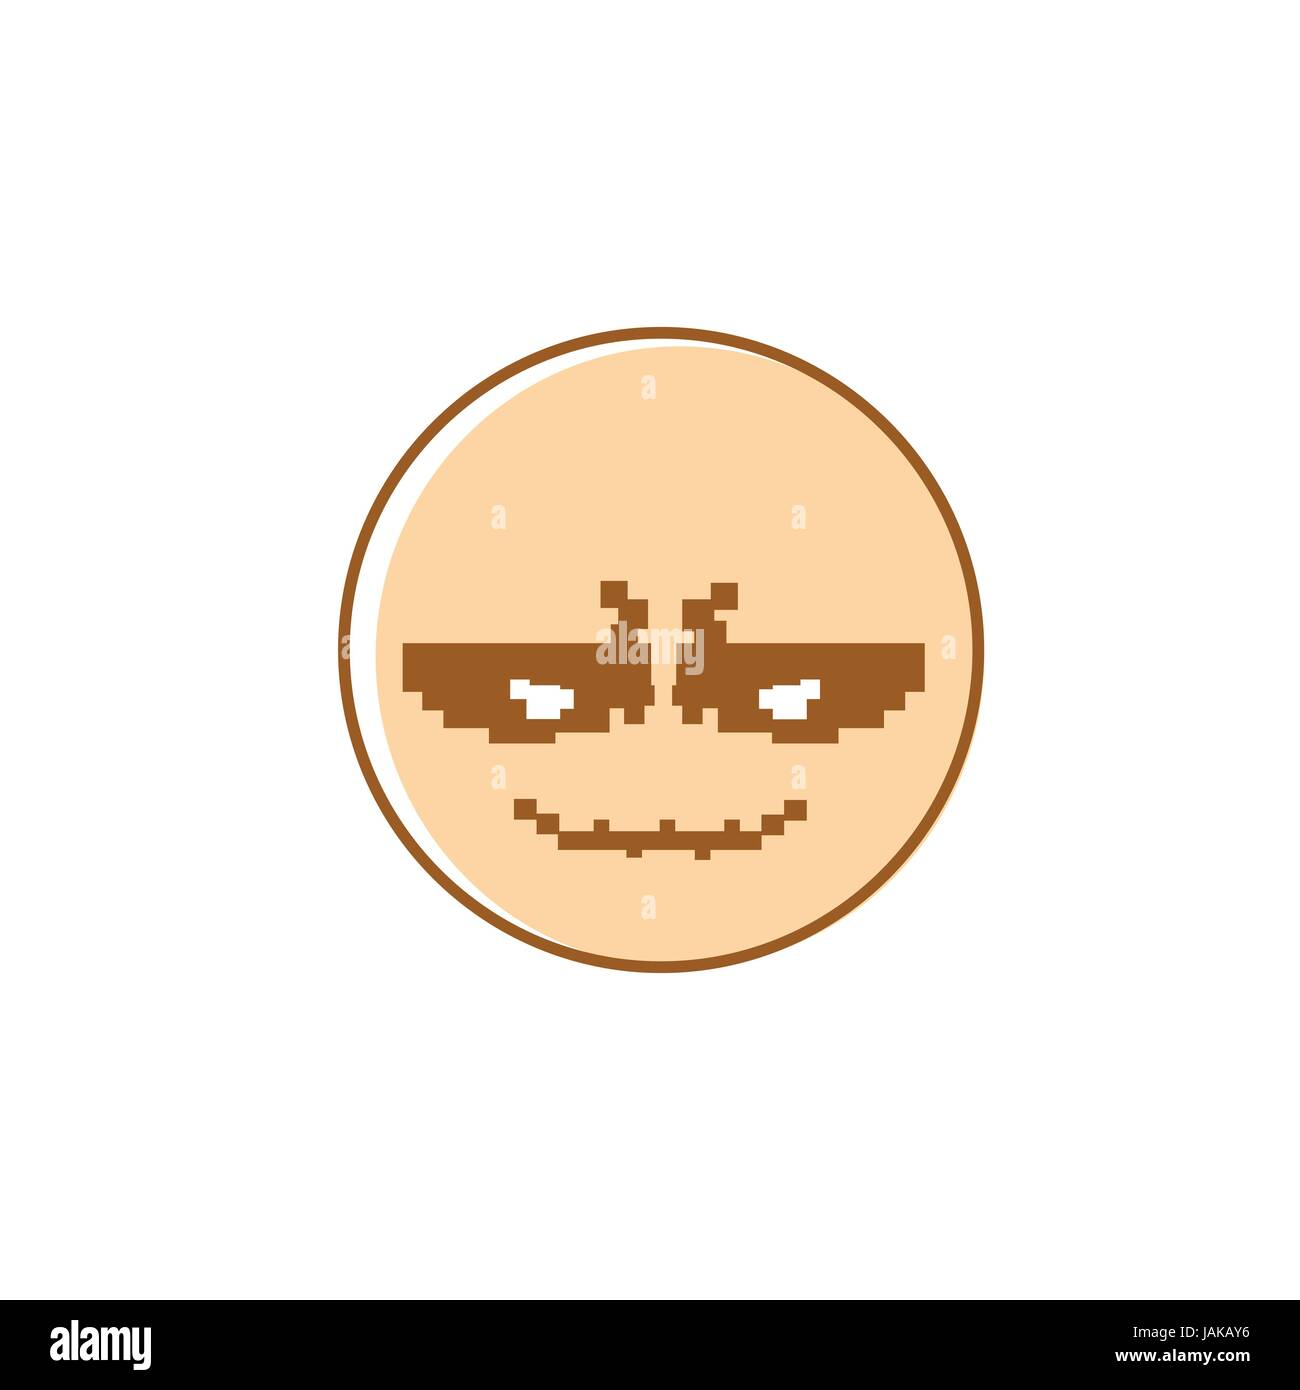 hight resolution of smiling cartoon face positive people emotion icon